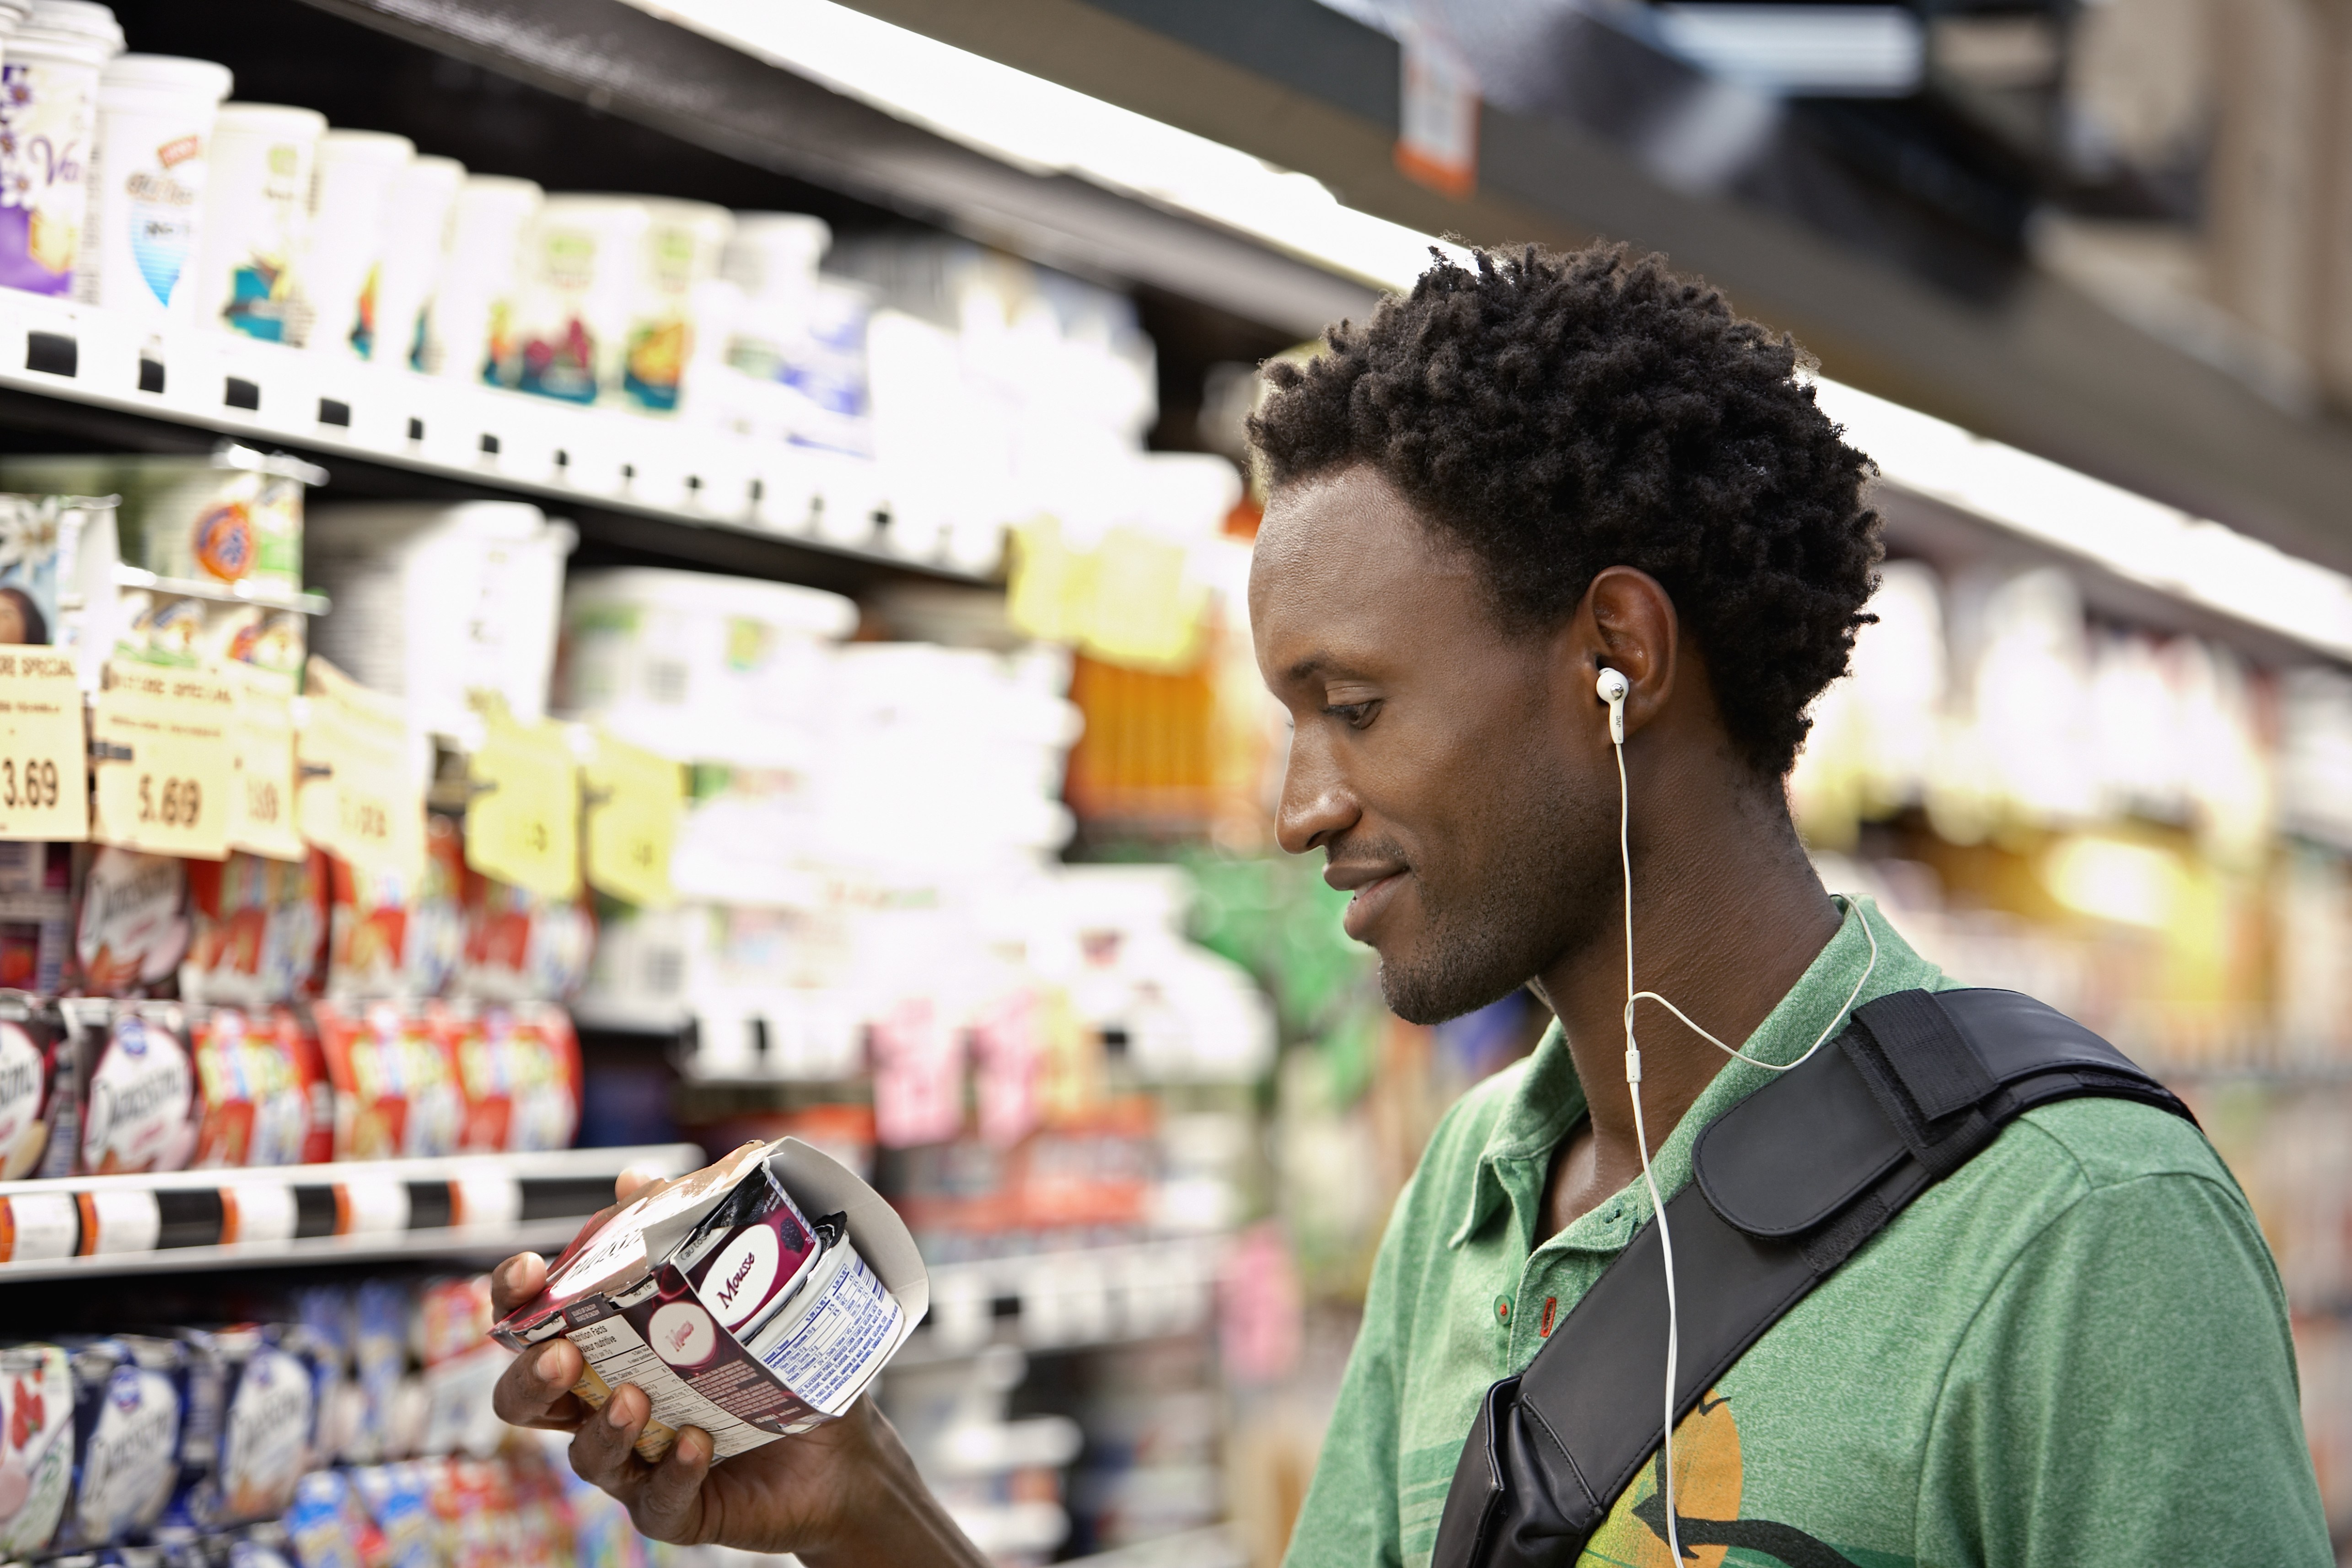 A shopper looks at a yogurt package in a grocery store aisle.